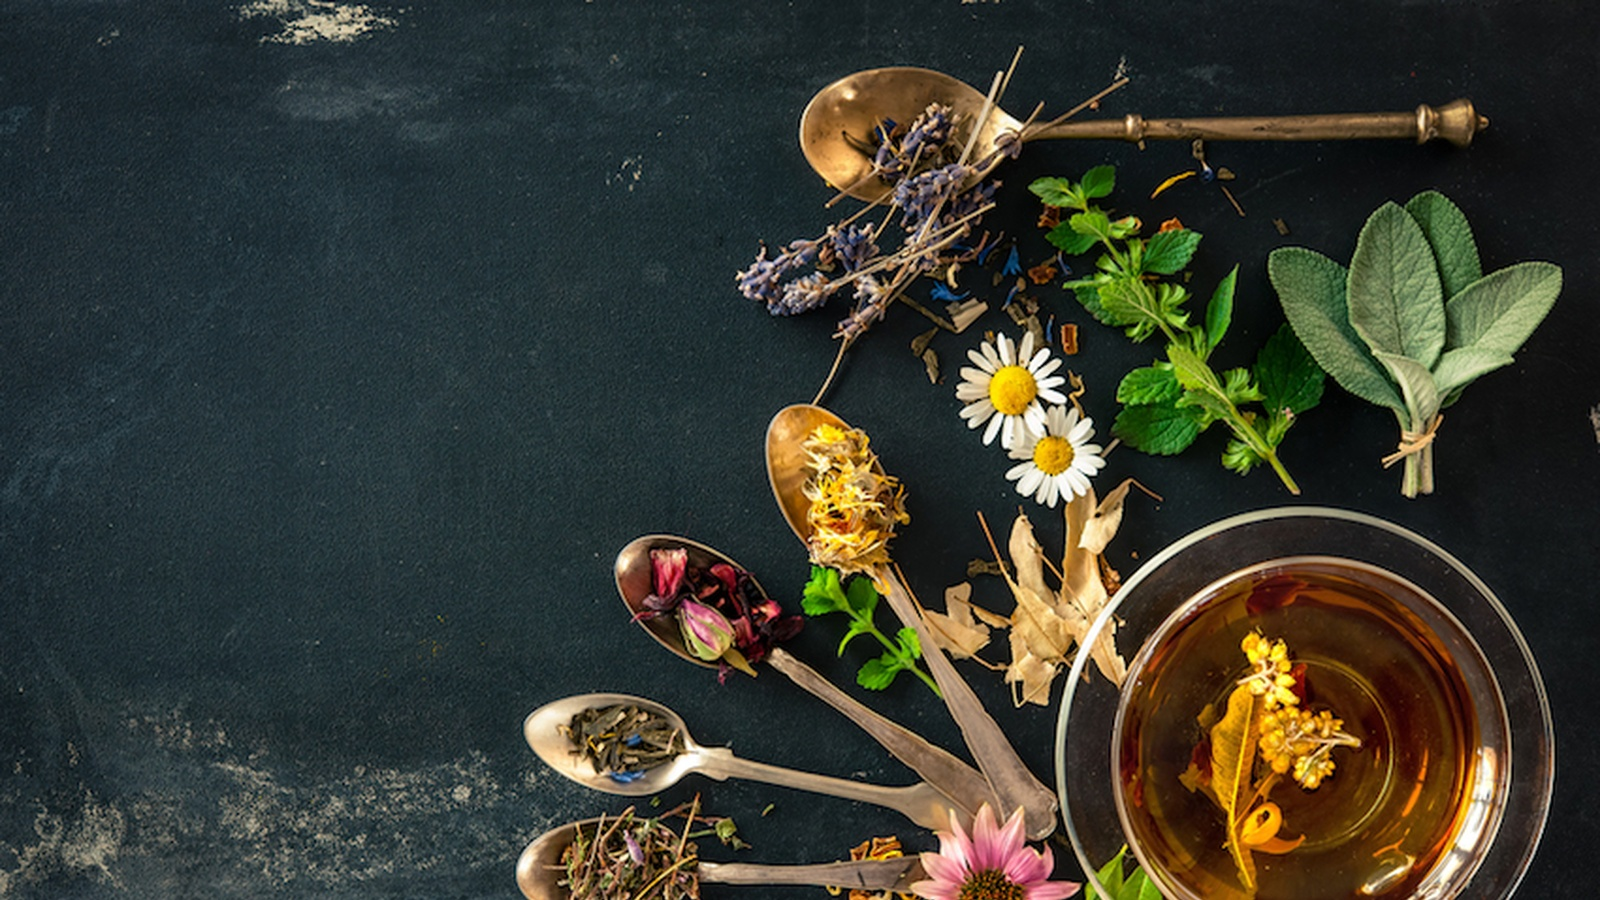 10 Ancient Medicinal Herbal Remedies That Actually Work